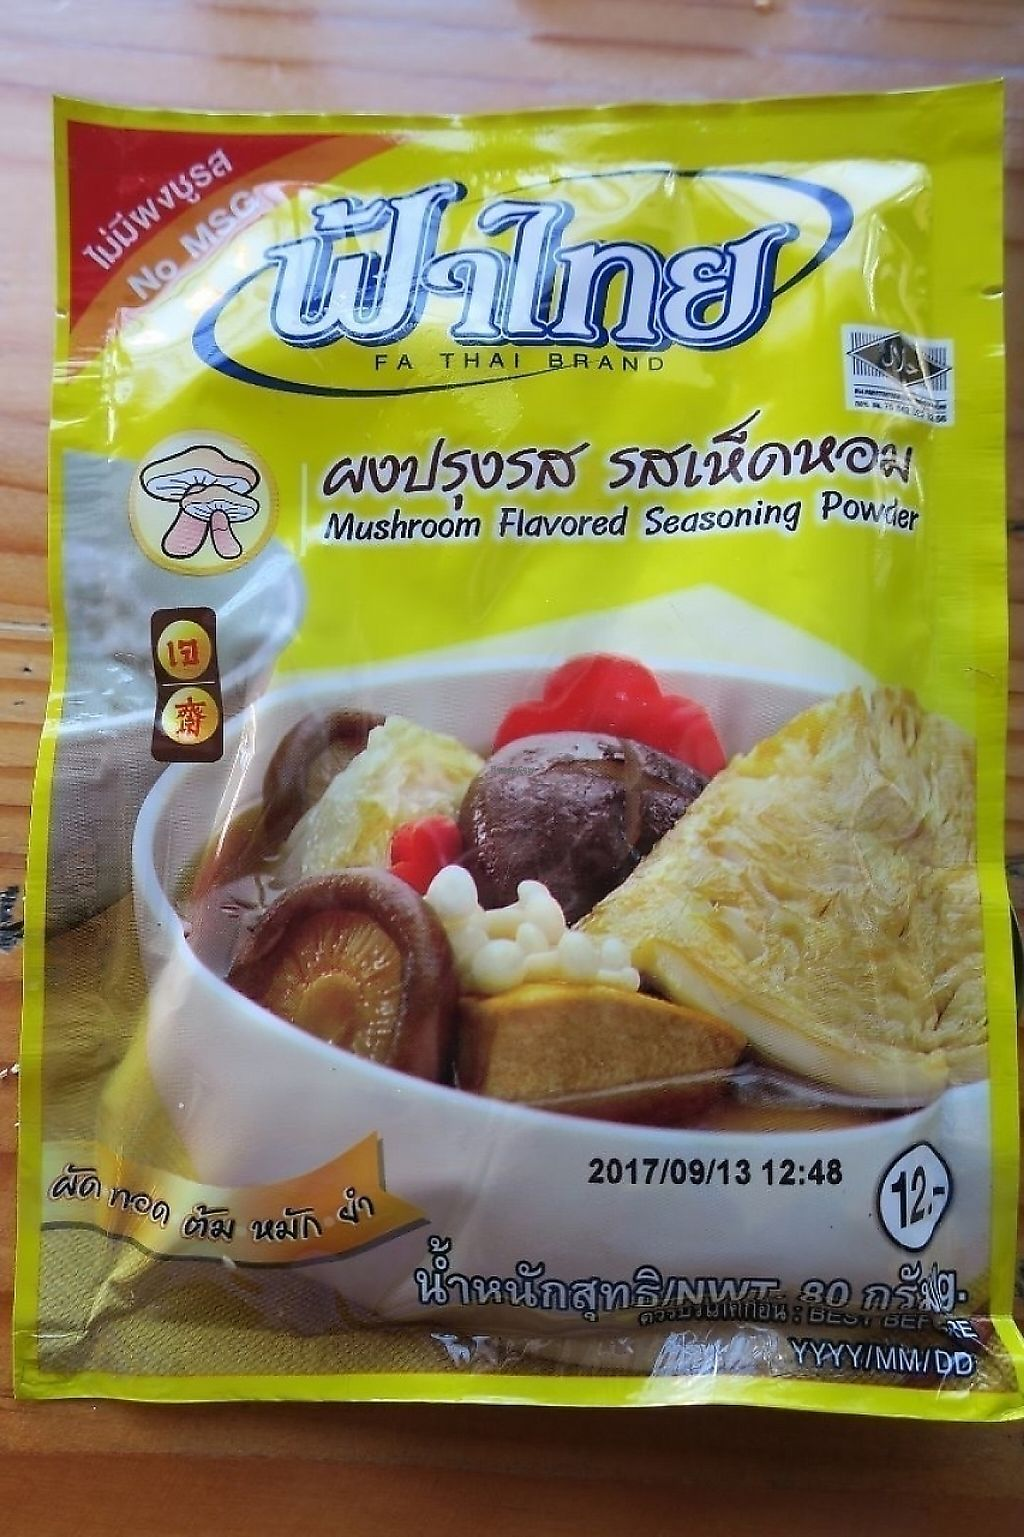 """Photo of Nitya Jay Vegetarian  by <a href=""""/members/profile/parakitch"""">parakitch</a> <br/>seasoning powder without MSG that was sold at this shop <br/> November 22, 2016  - <a href='/contact/abuse/image/56332/193287'>Report</a>"""